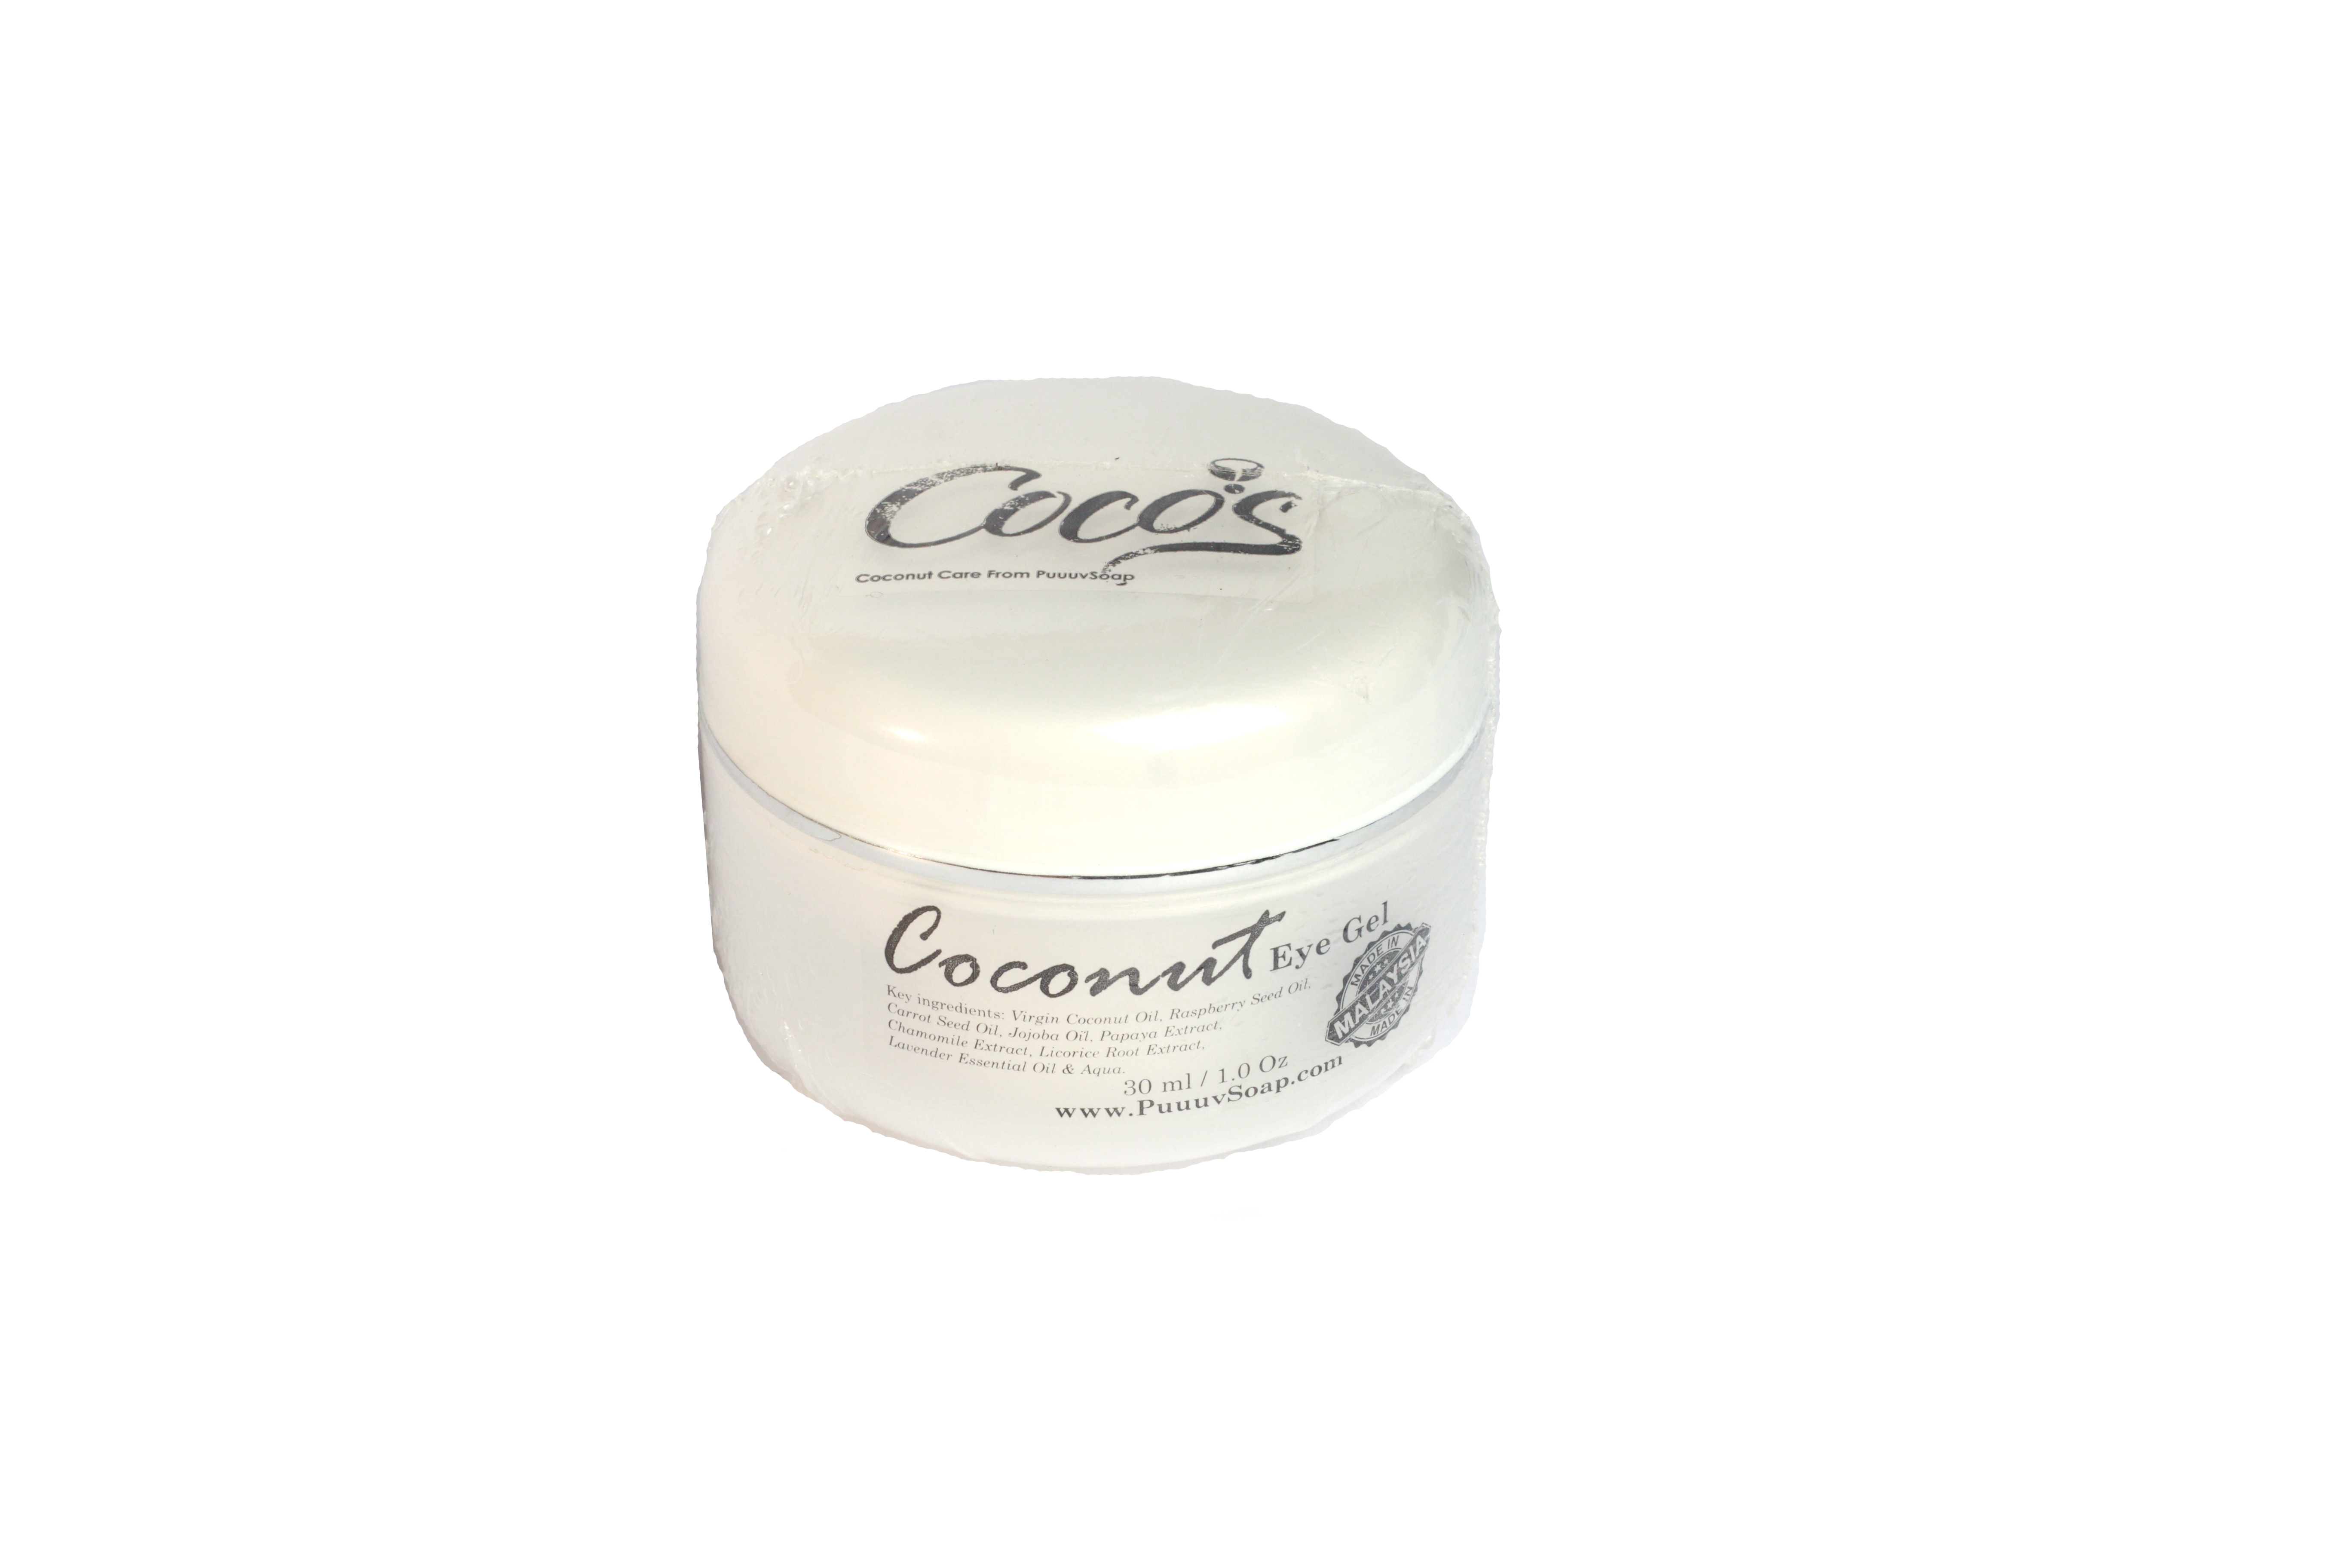 Coconut Eye Gel